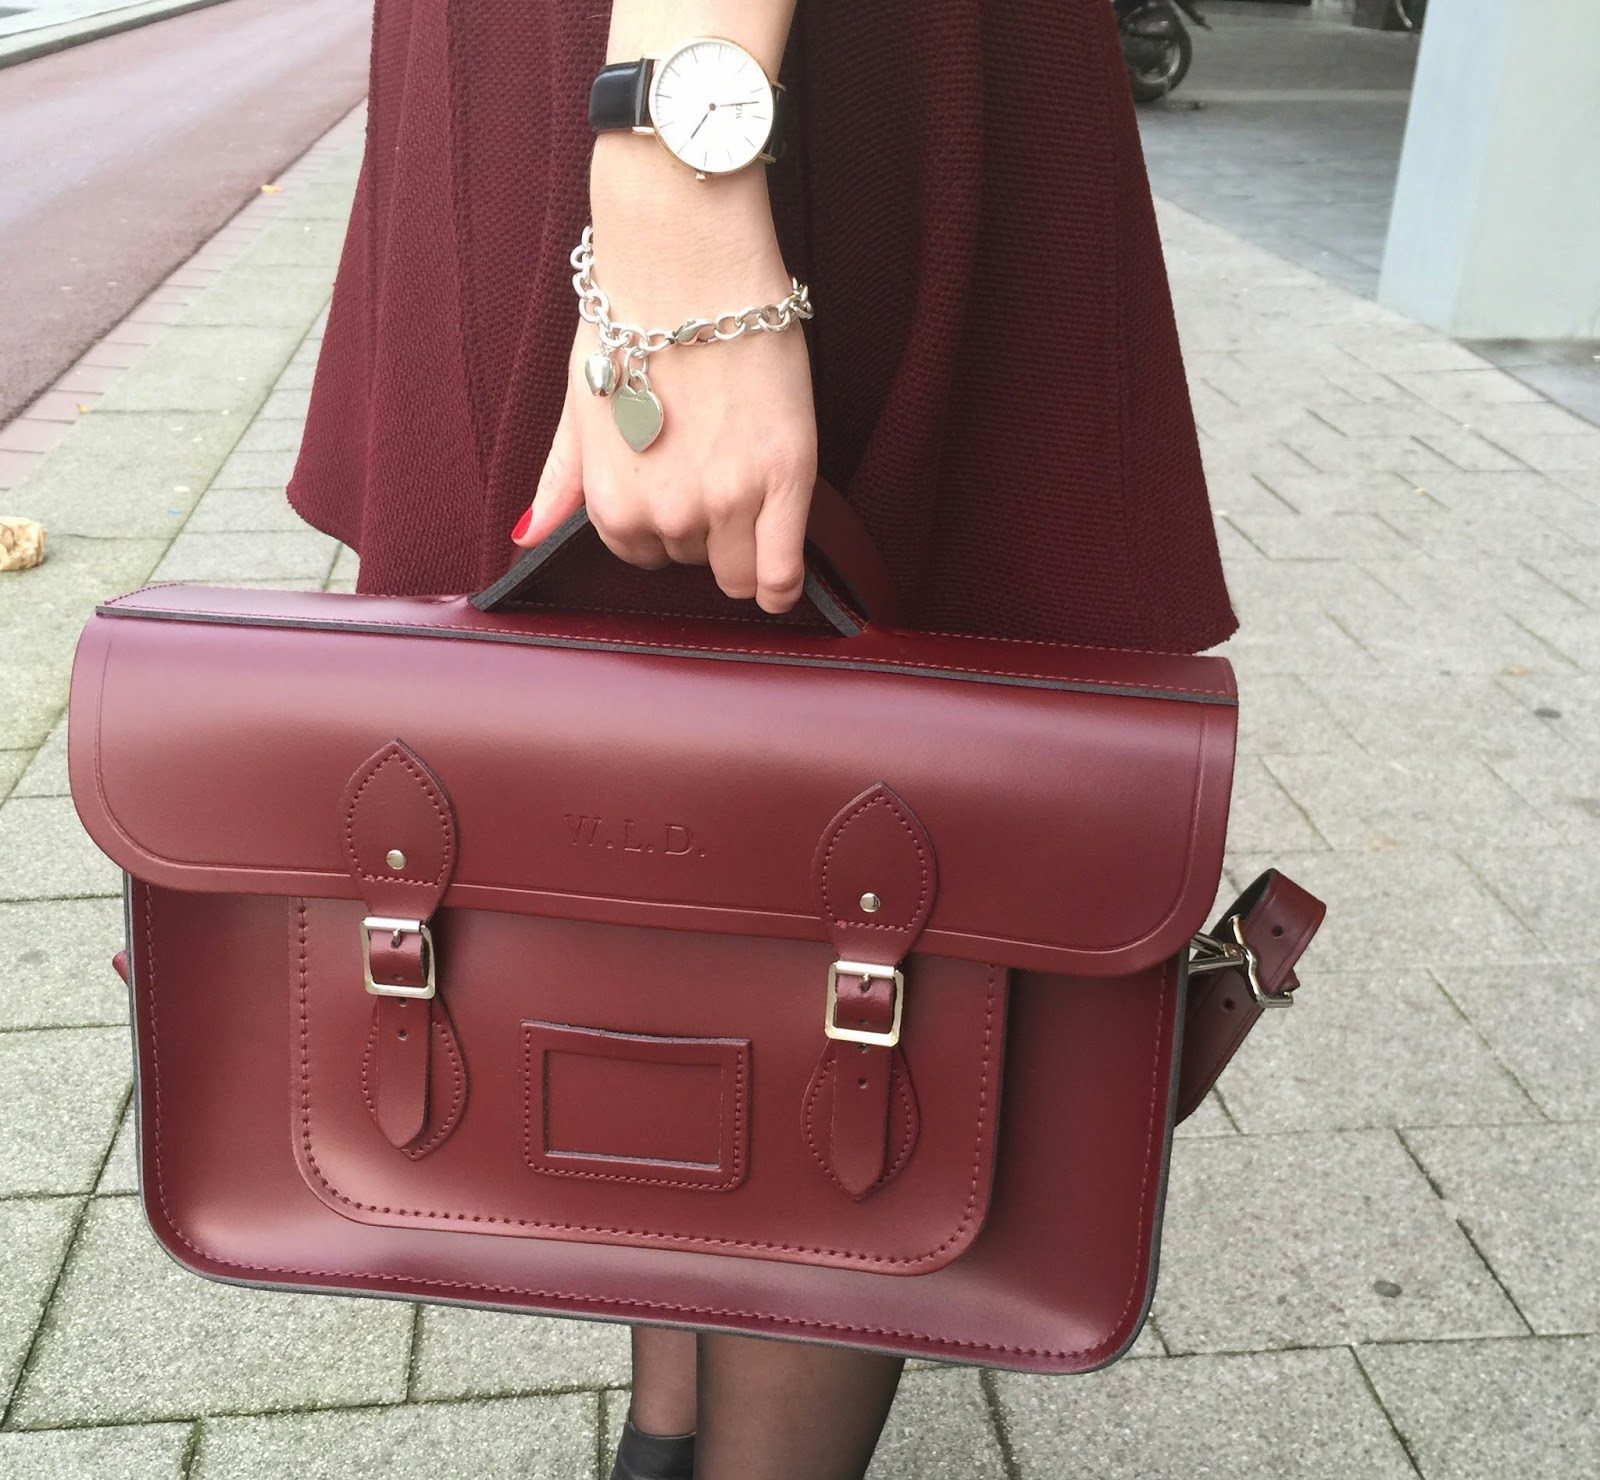 Cambridge Elevating: Bordeaux & Camel Outfit With Oxblood Batchel